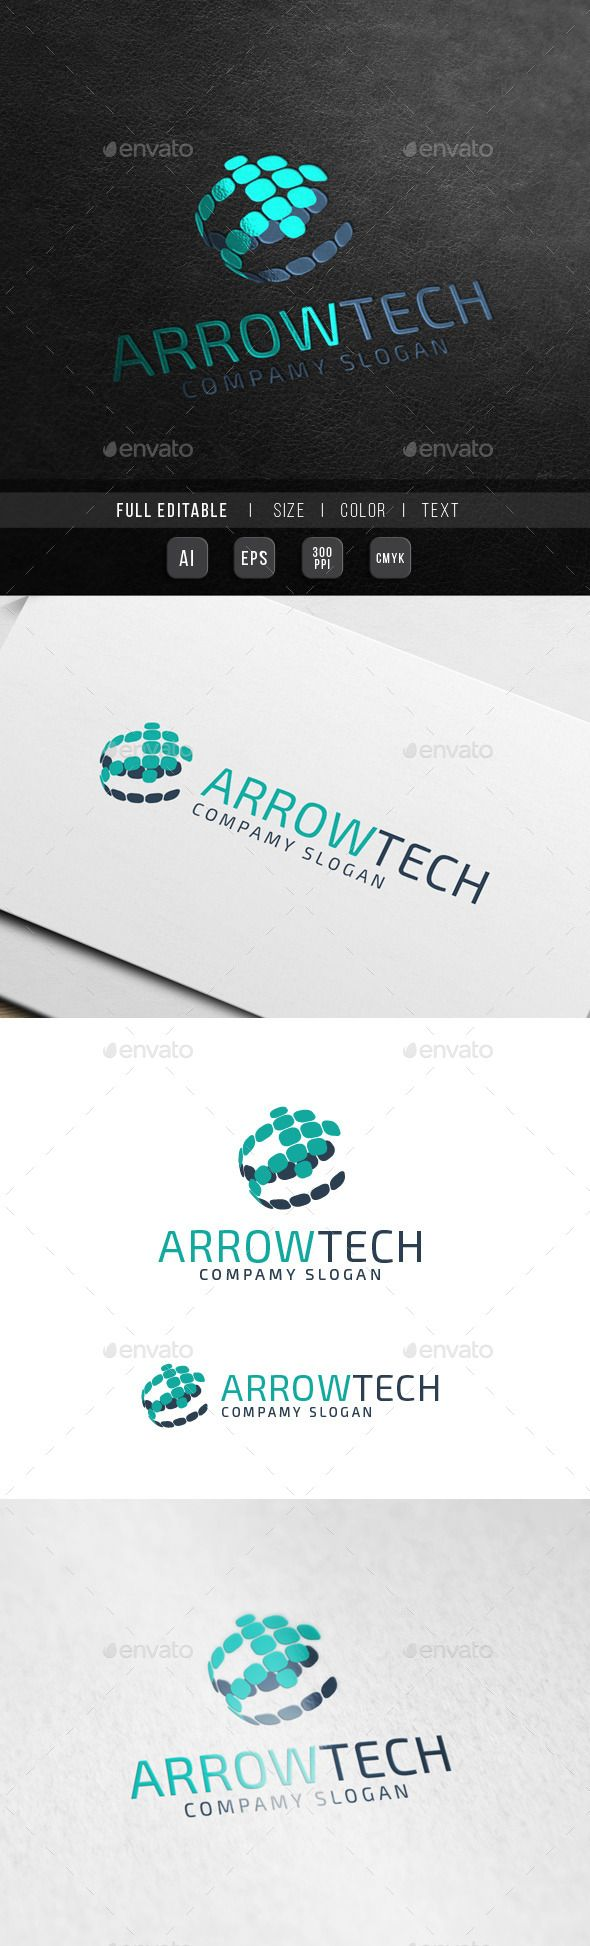 Global Arrow Technology  Music World chart — Vector EPS #increase #market • Available here → https://graphicriver.net/item/global-arrow-technology-music-world-chart/10440300?ref=pxcr